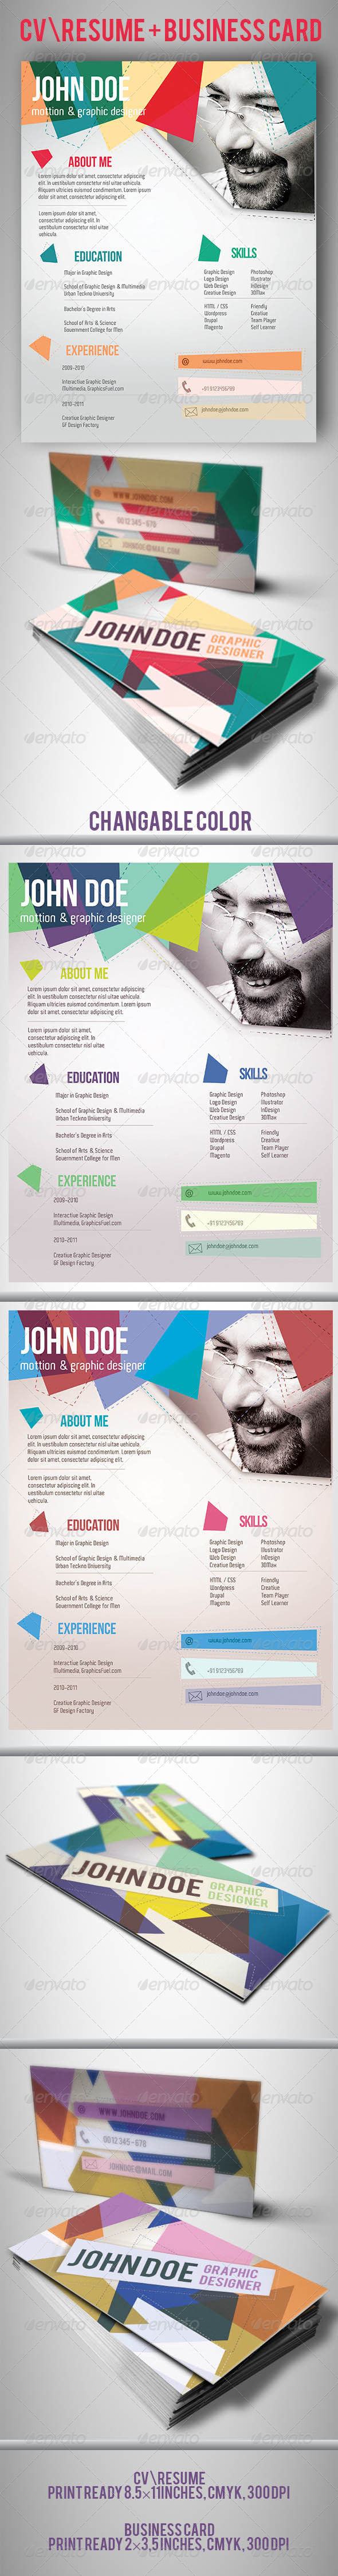 CV/Resume and Business Card Template - Stationery Print Templates